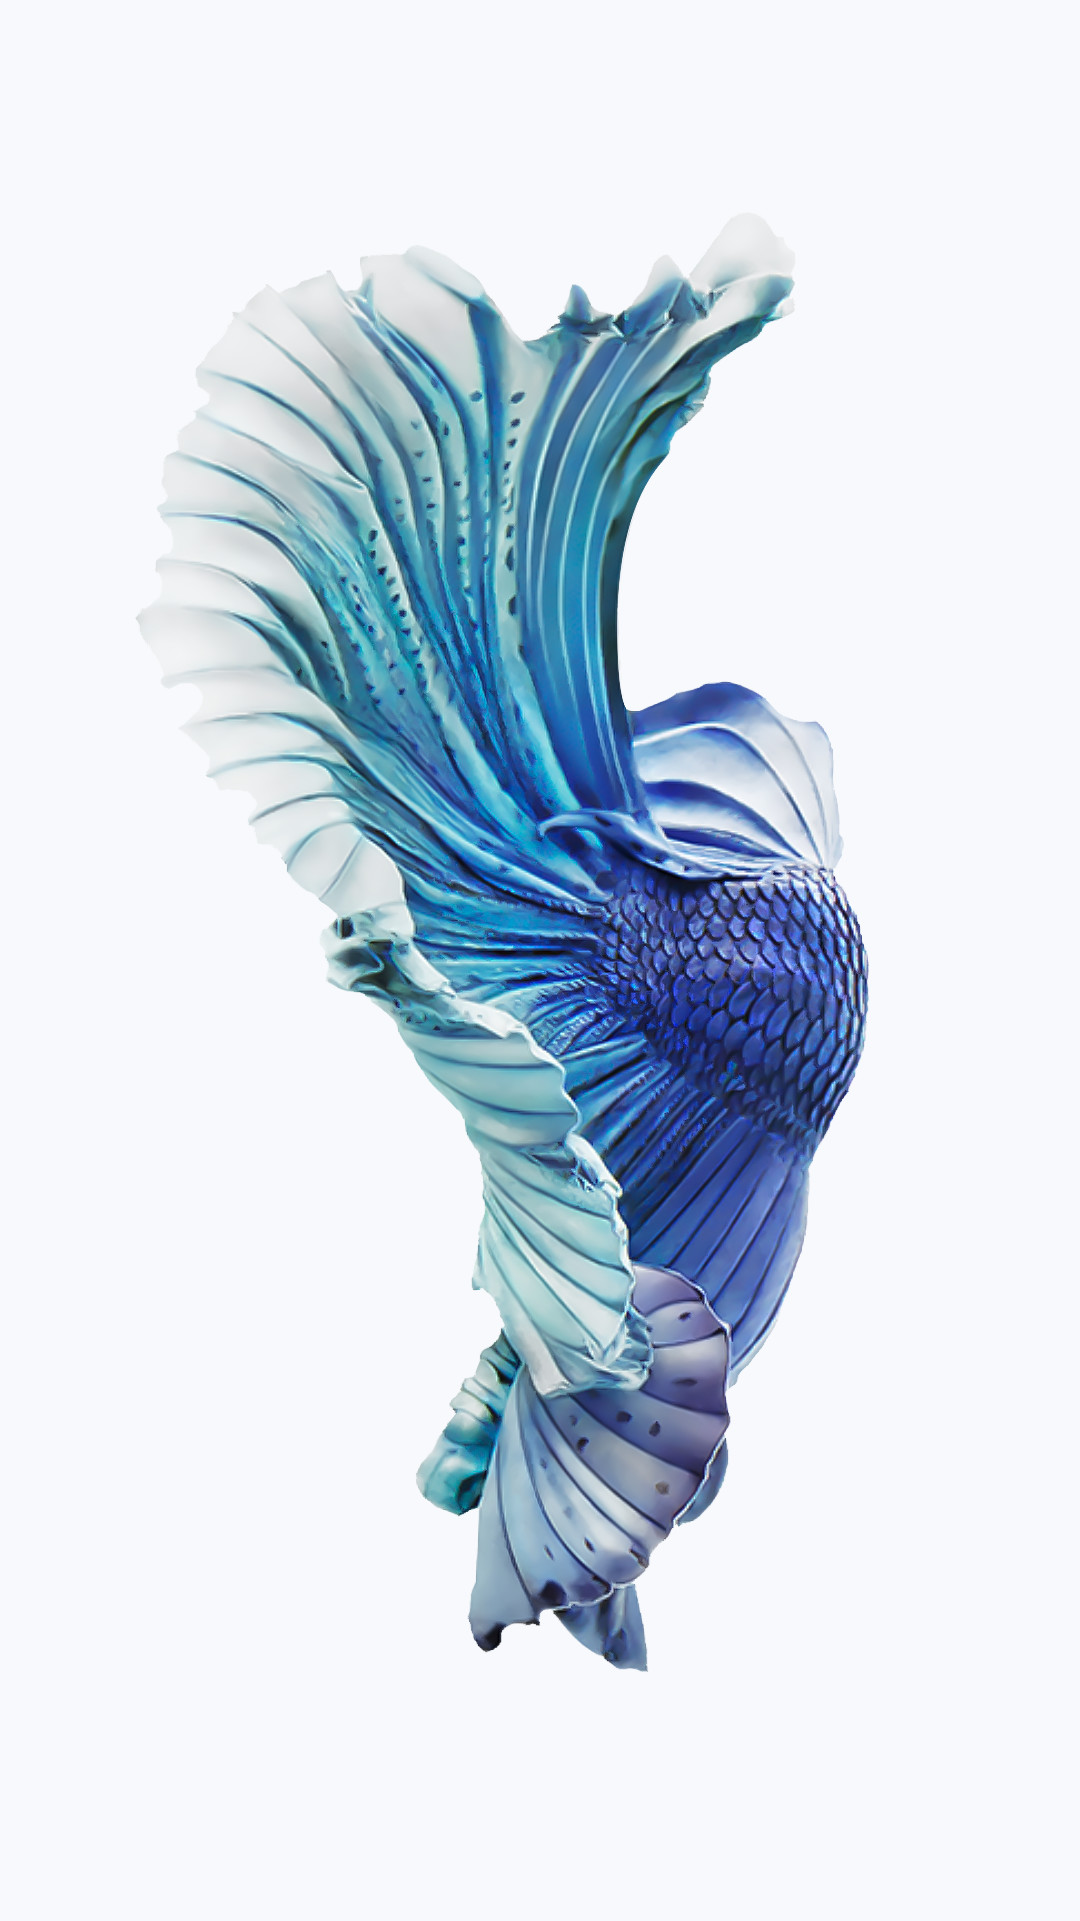 iPhone-6s-Silver-Blue-Fish-Wallpaper.png (1080×